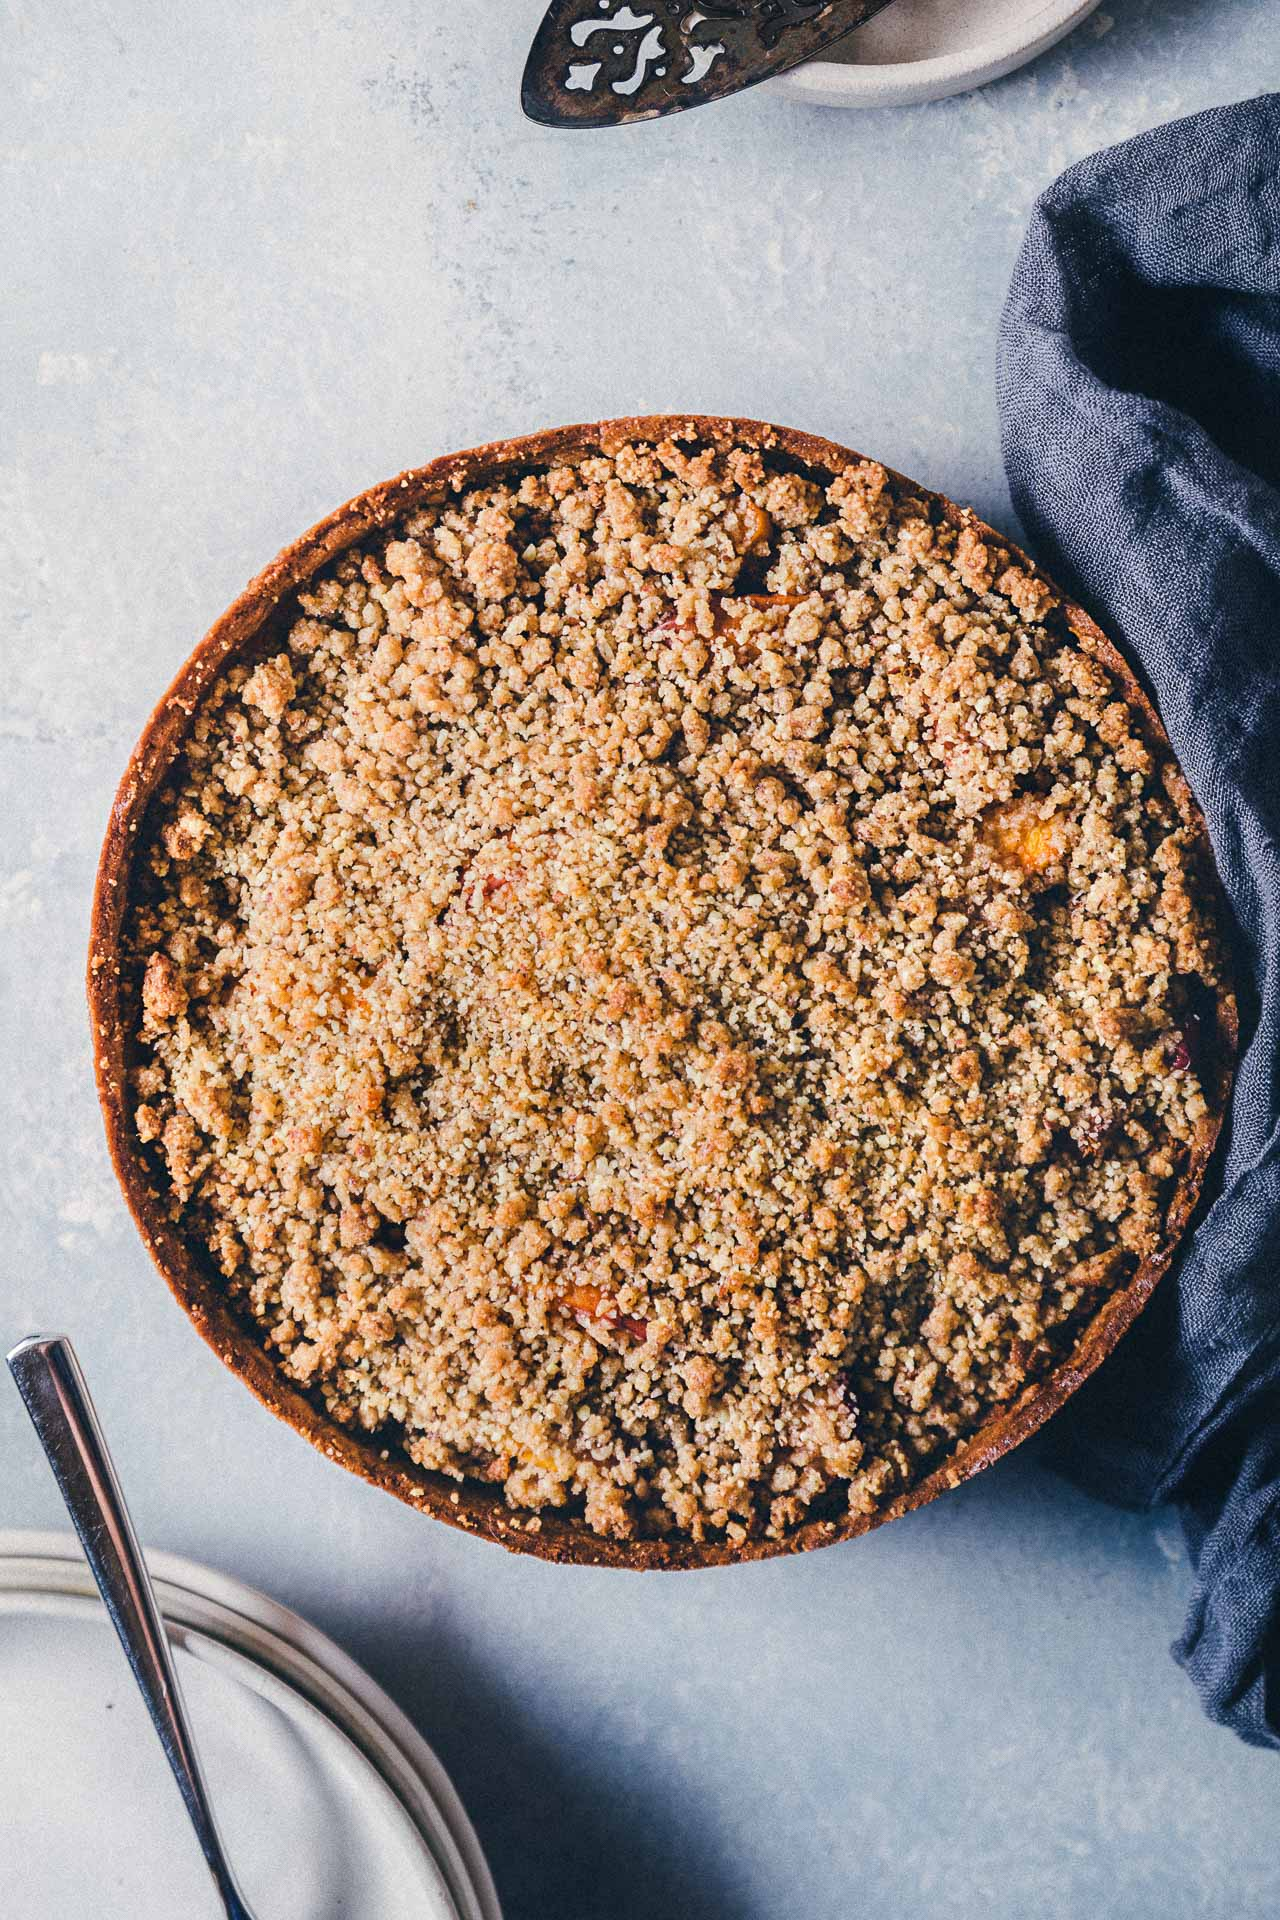 How To Make a Crumble Topping